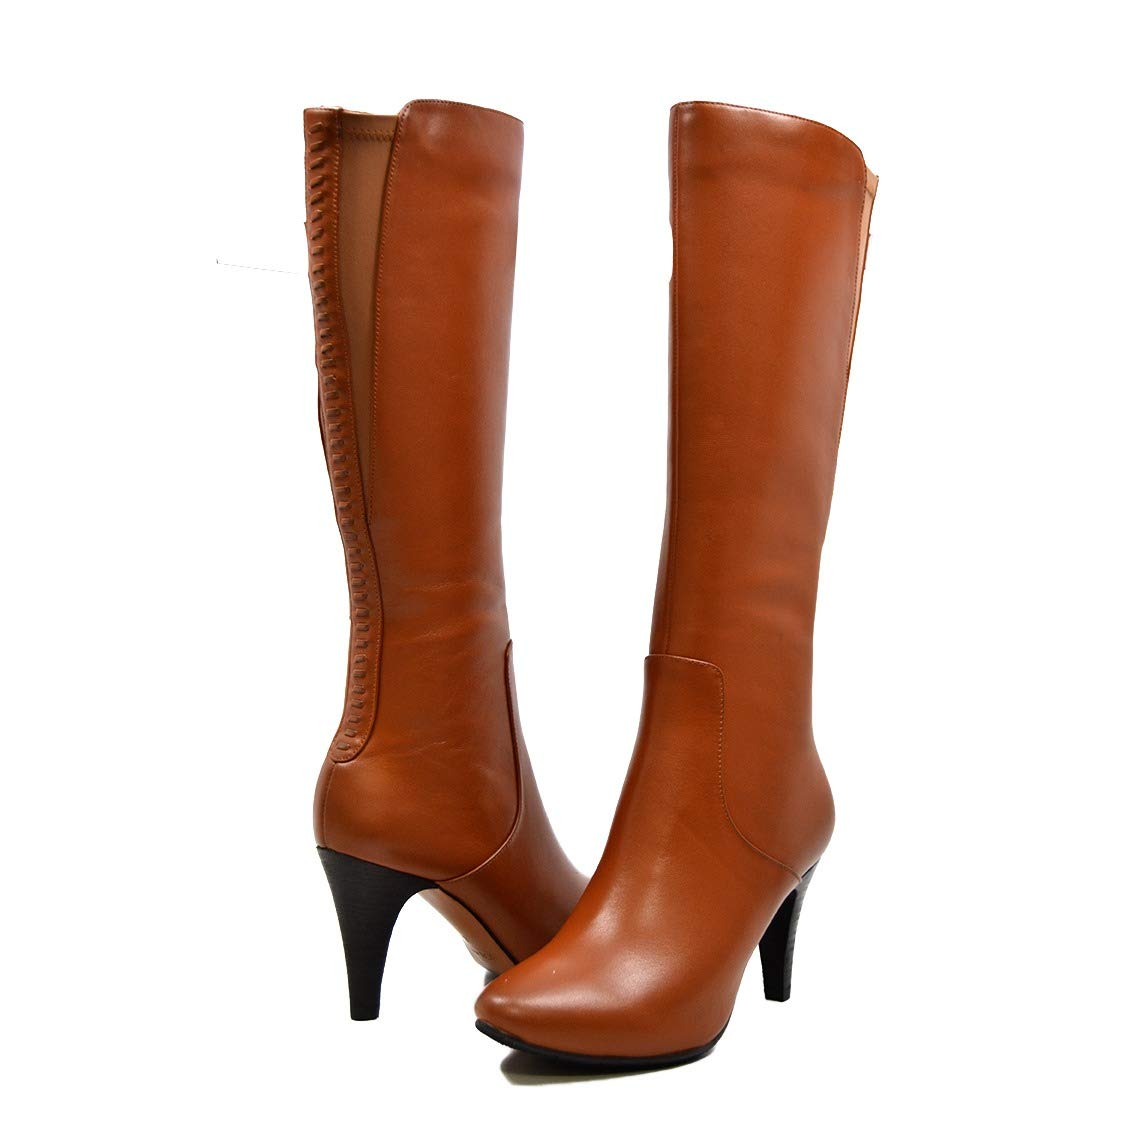 2d04205aa9 SoleMani Women's Slim Calf Paradise Cognac Leather Boot 11: Amazon.co.uk:  Shoes & Bags